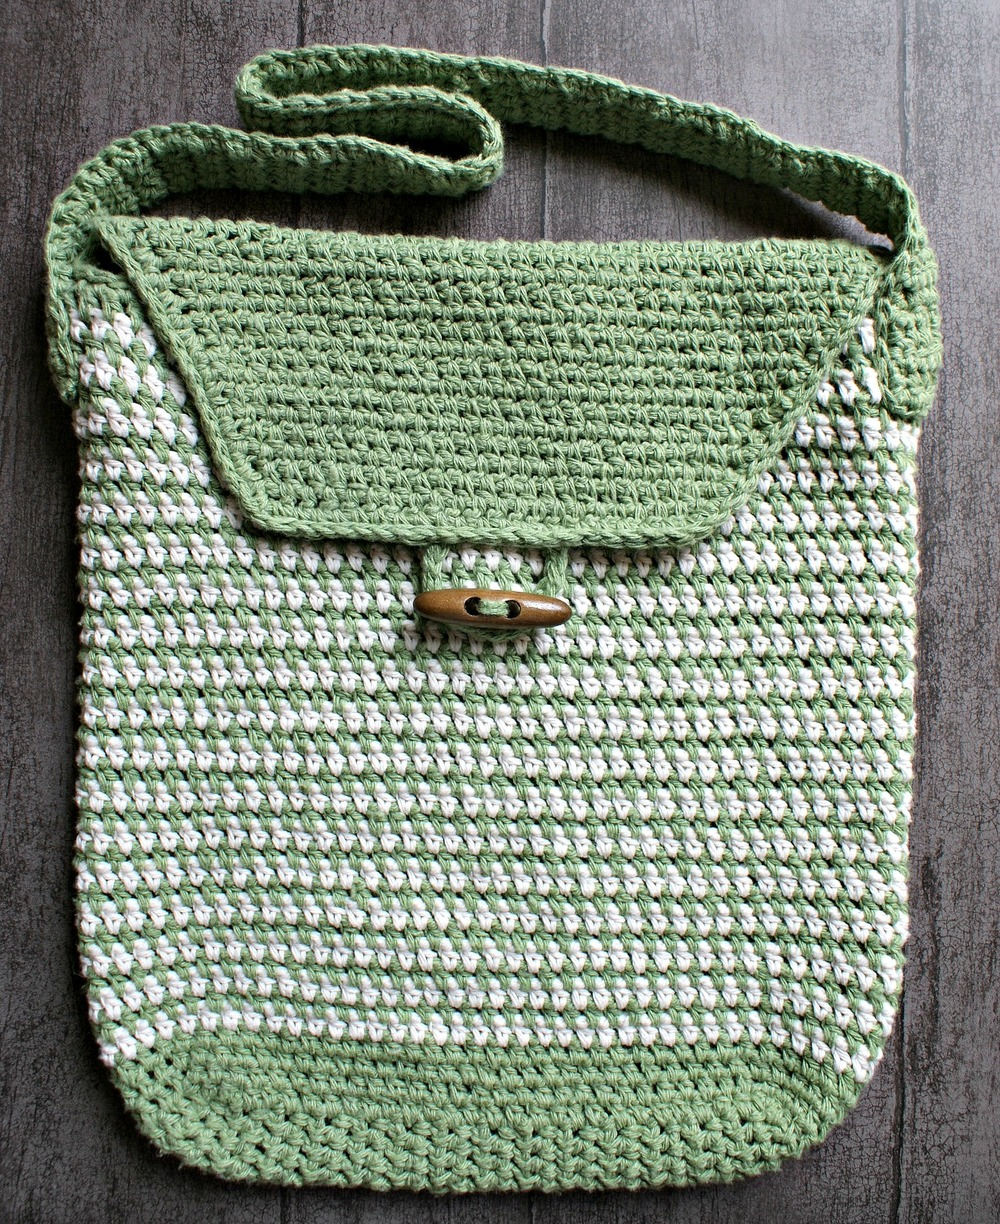 Work satchel crochet bag pattern favecrafts bankloansurffo Image collections